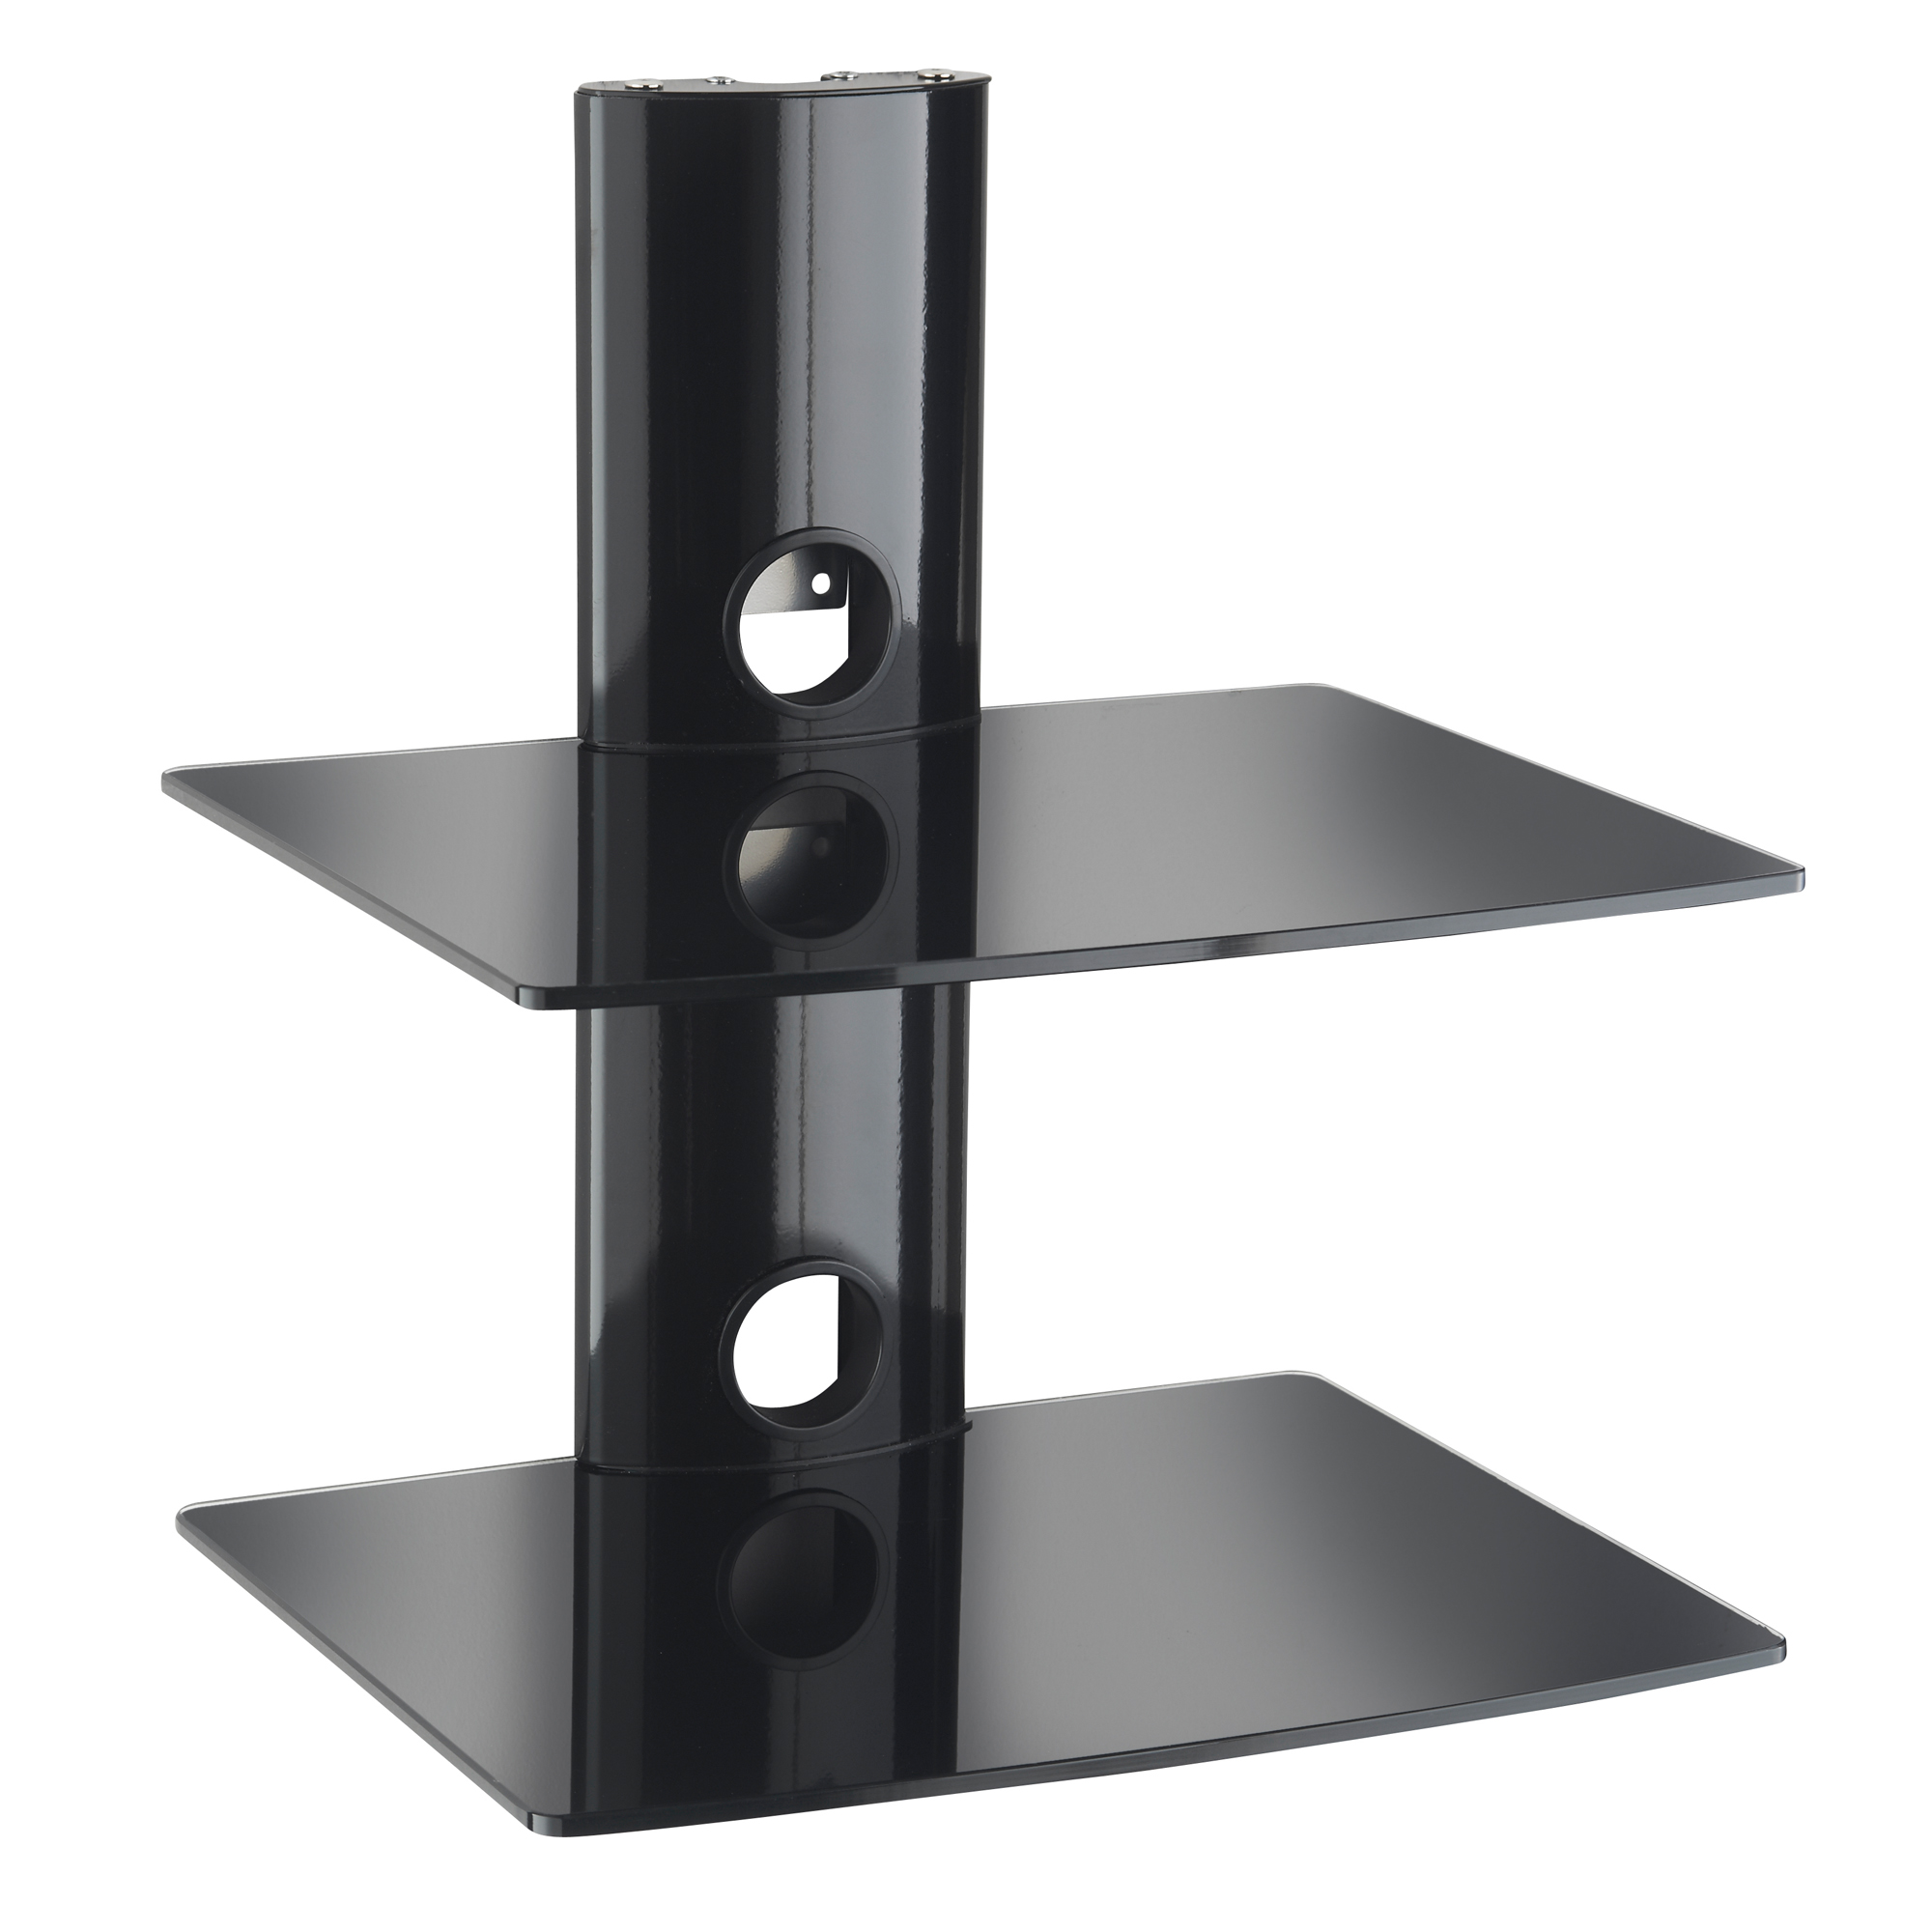 vonhaus floating shelves wall mounted bracket for dvd sky box black shelf closet storage system wood and steel shelving unit shells corner laptop desk coat hook board bathroom